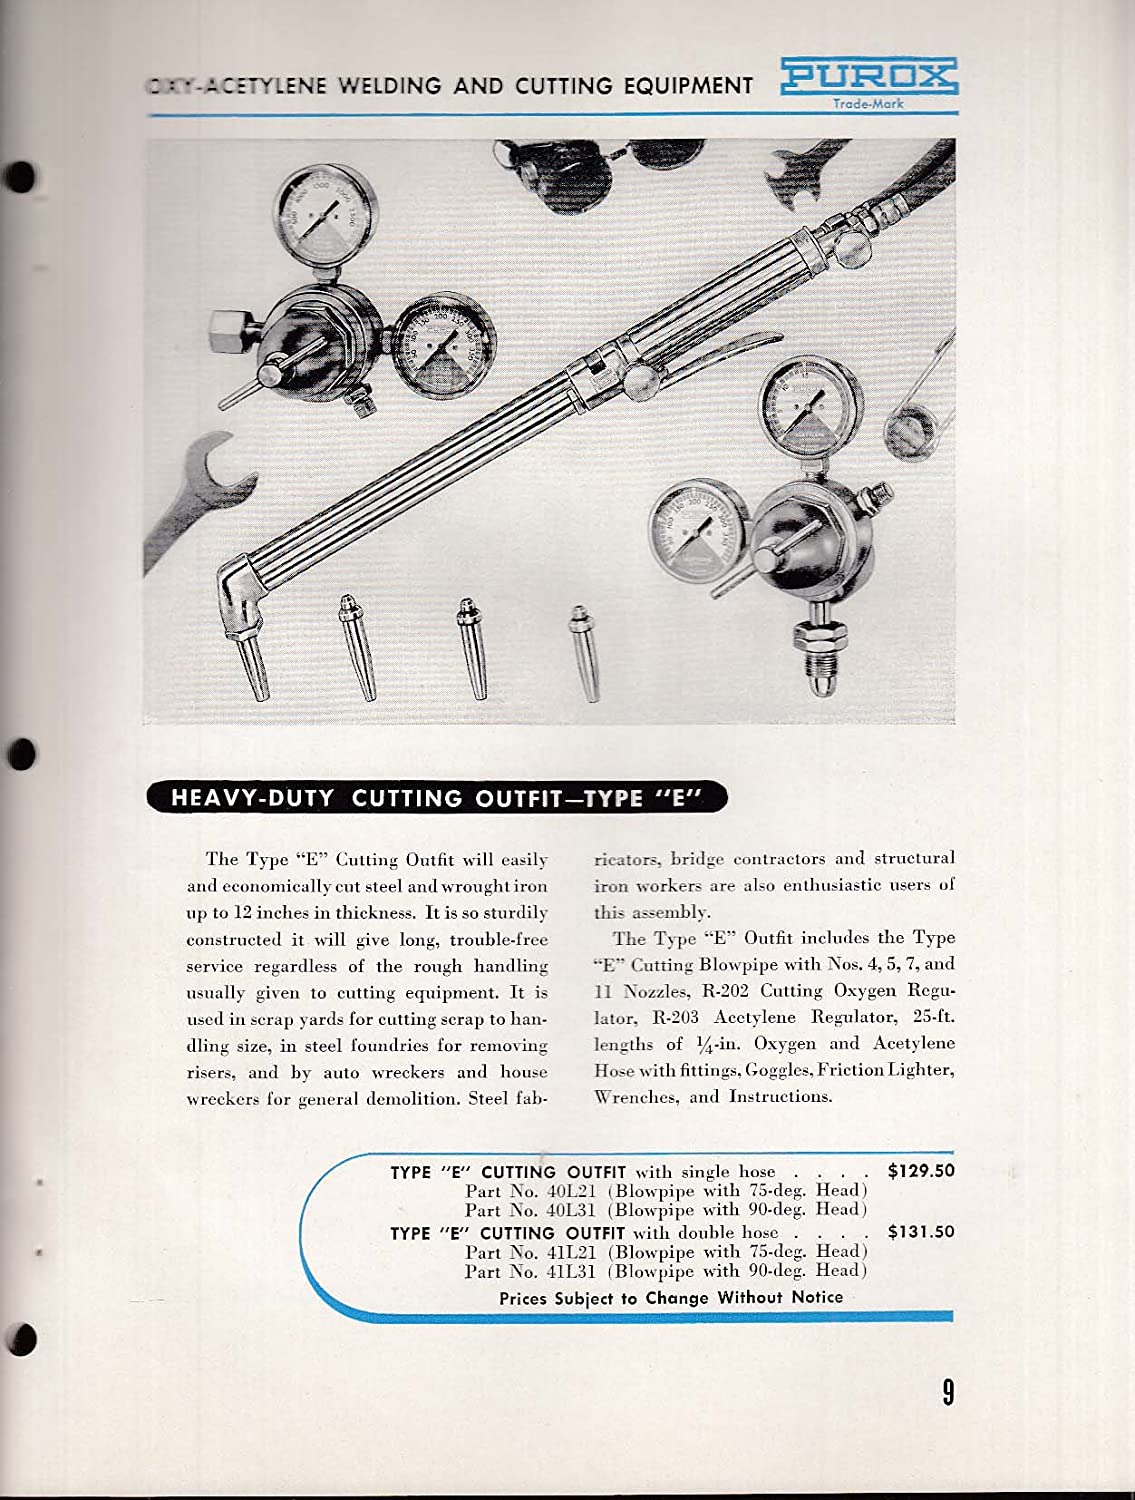 Purox Oxy Acetylene Welding Cutting Equipment Catalog 1953 At Diagram Amazons Entertainment Collectibles Store